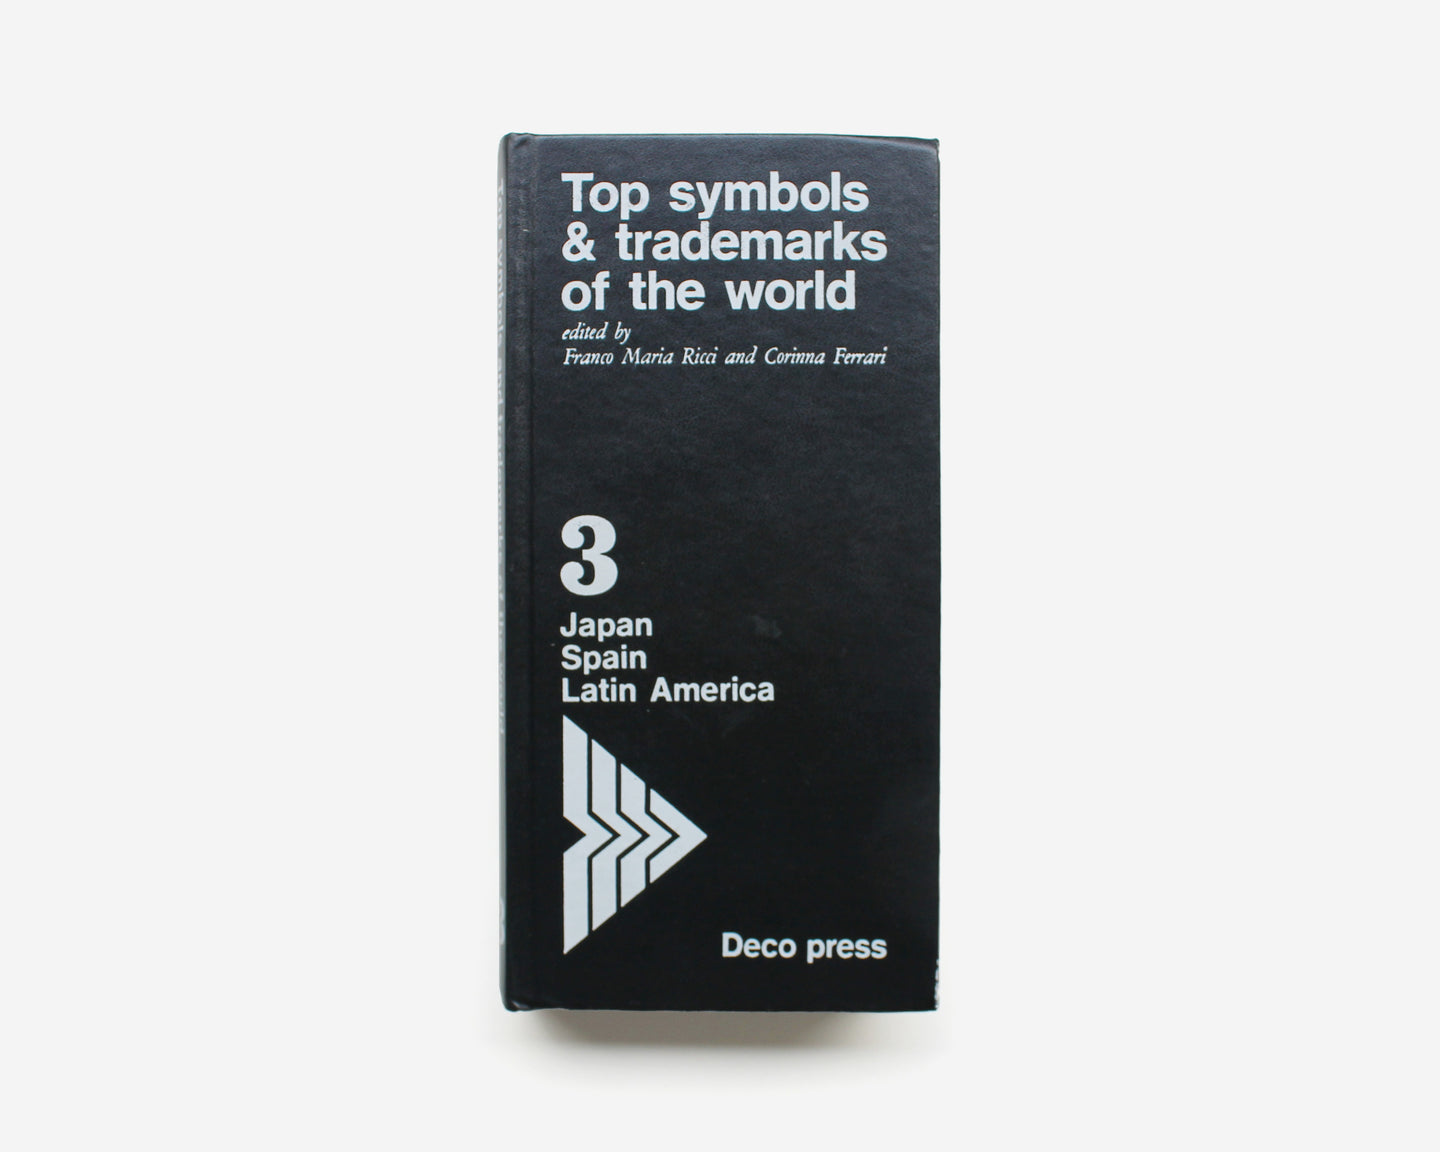 Top symbols & trademarks of the world [Volume 3: Japan, Spain and Latin America]